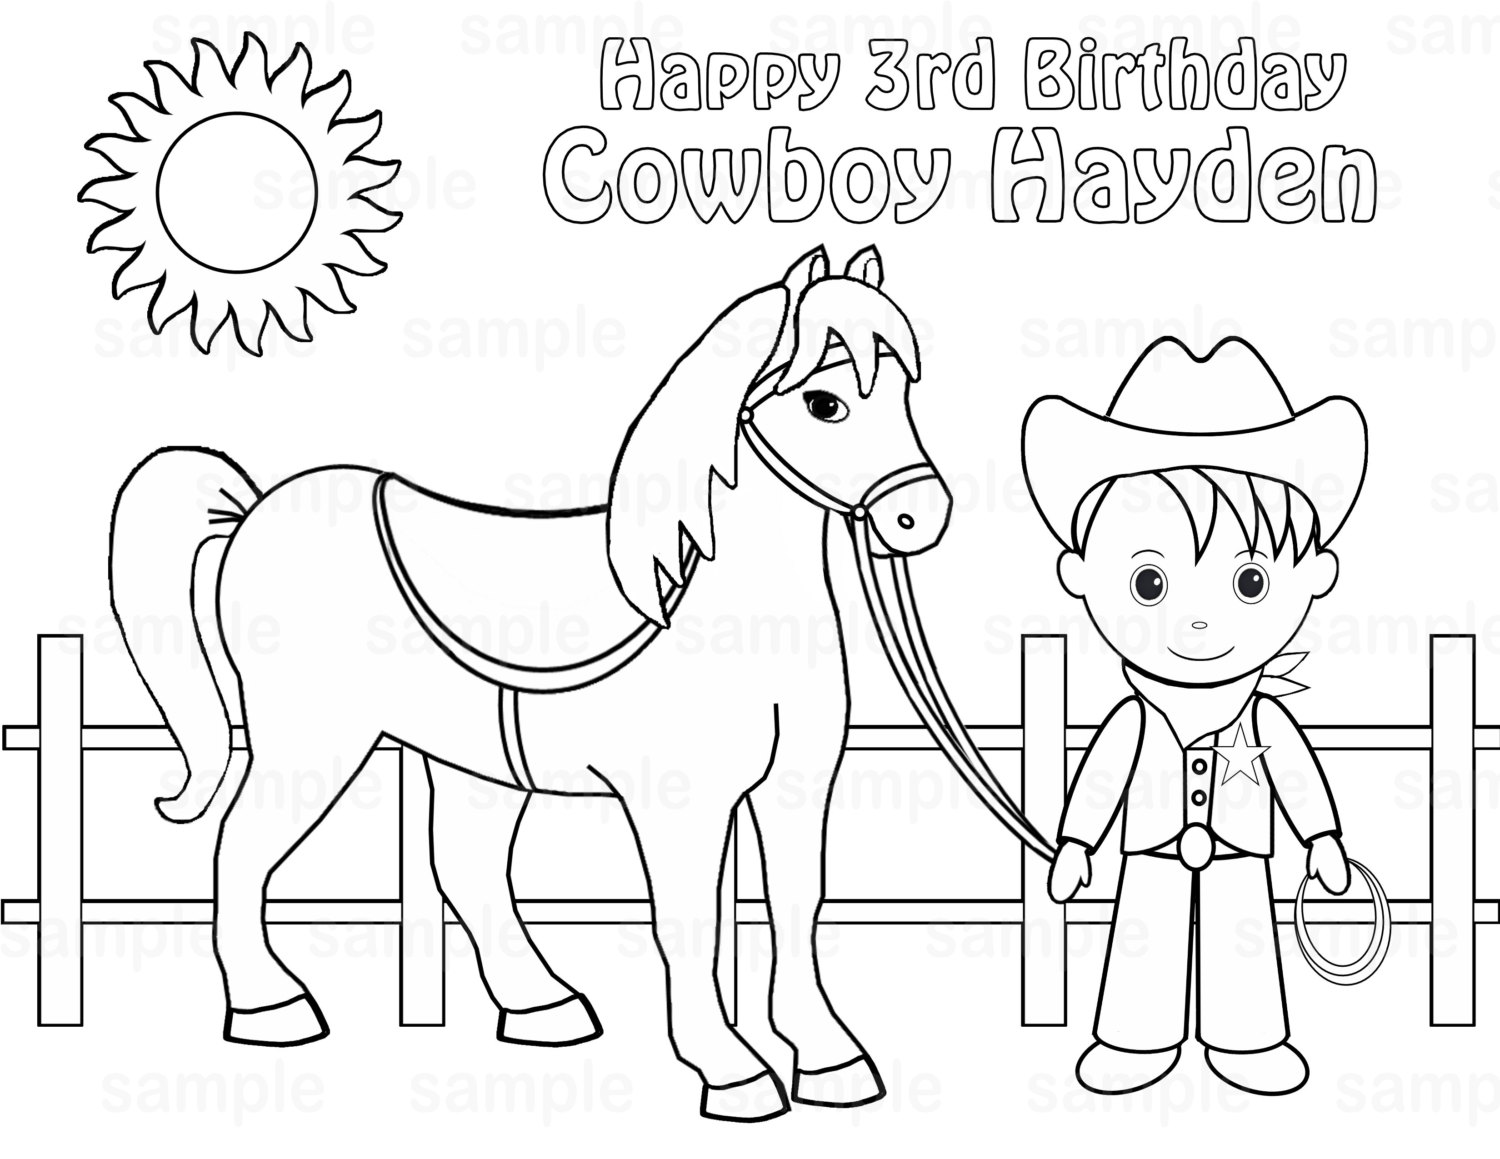 Horse And Cowboy Drawing at GetDrawings.com | Free for personal use ...